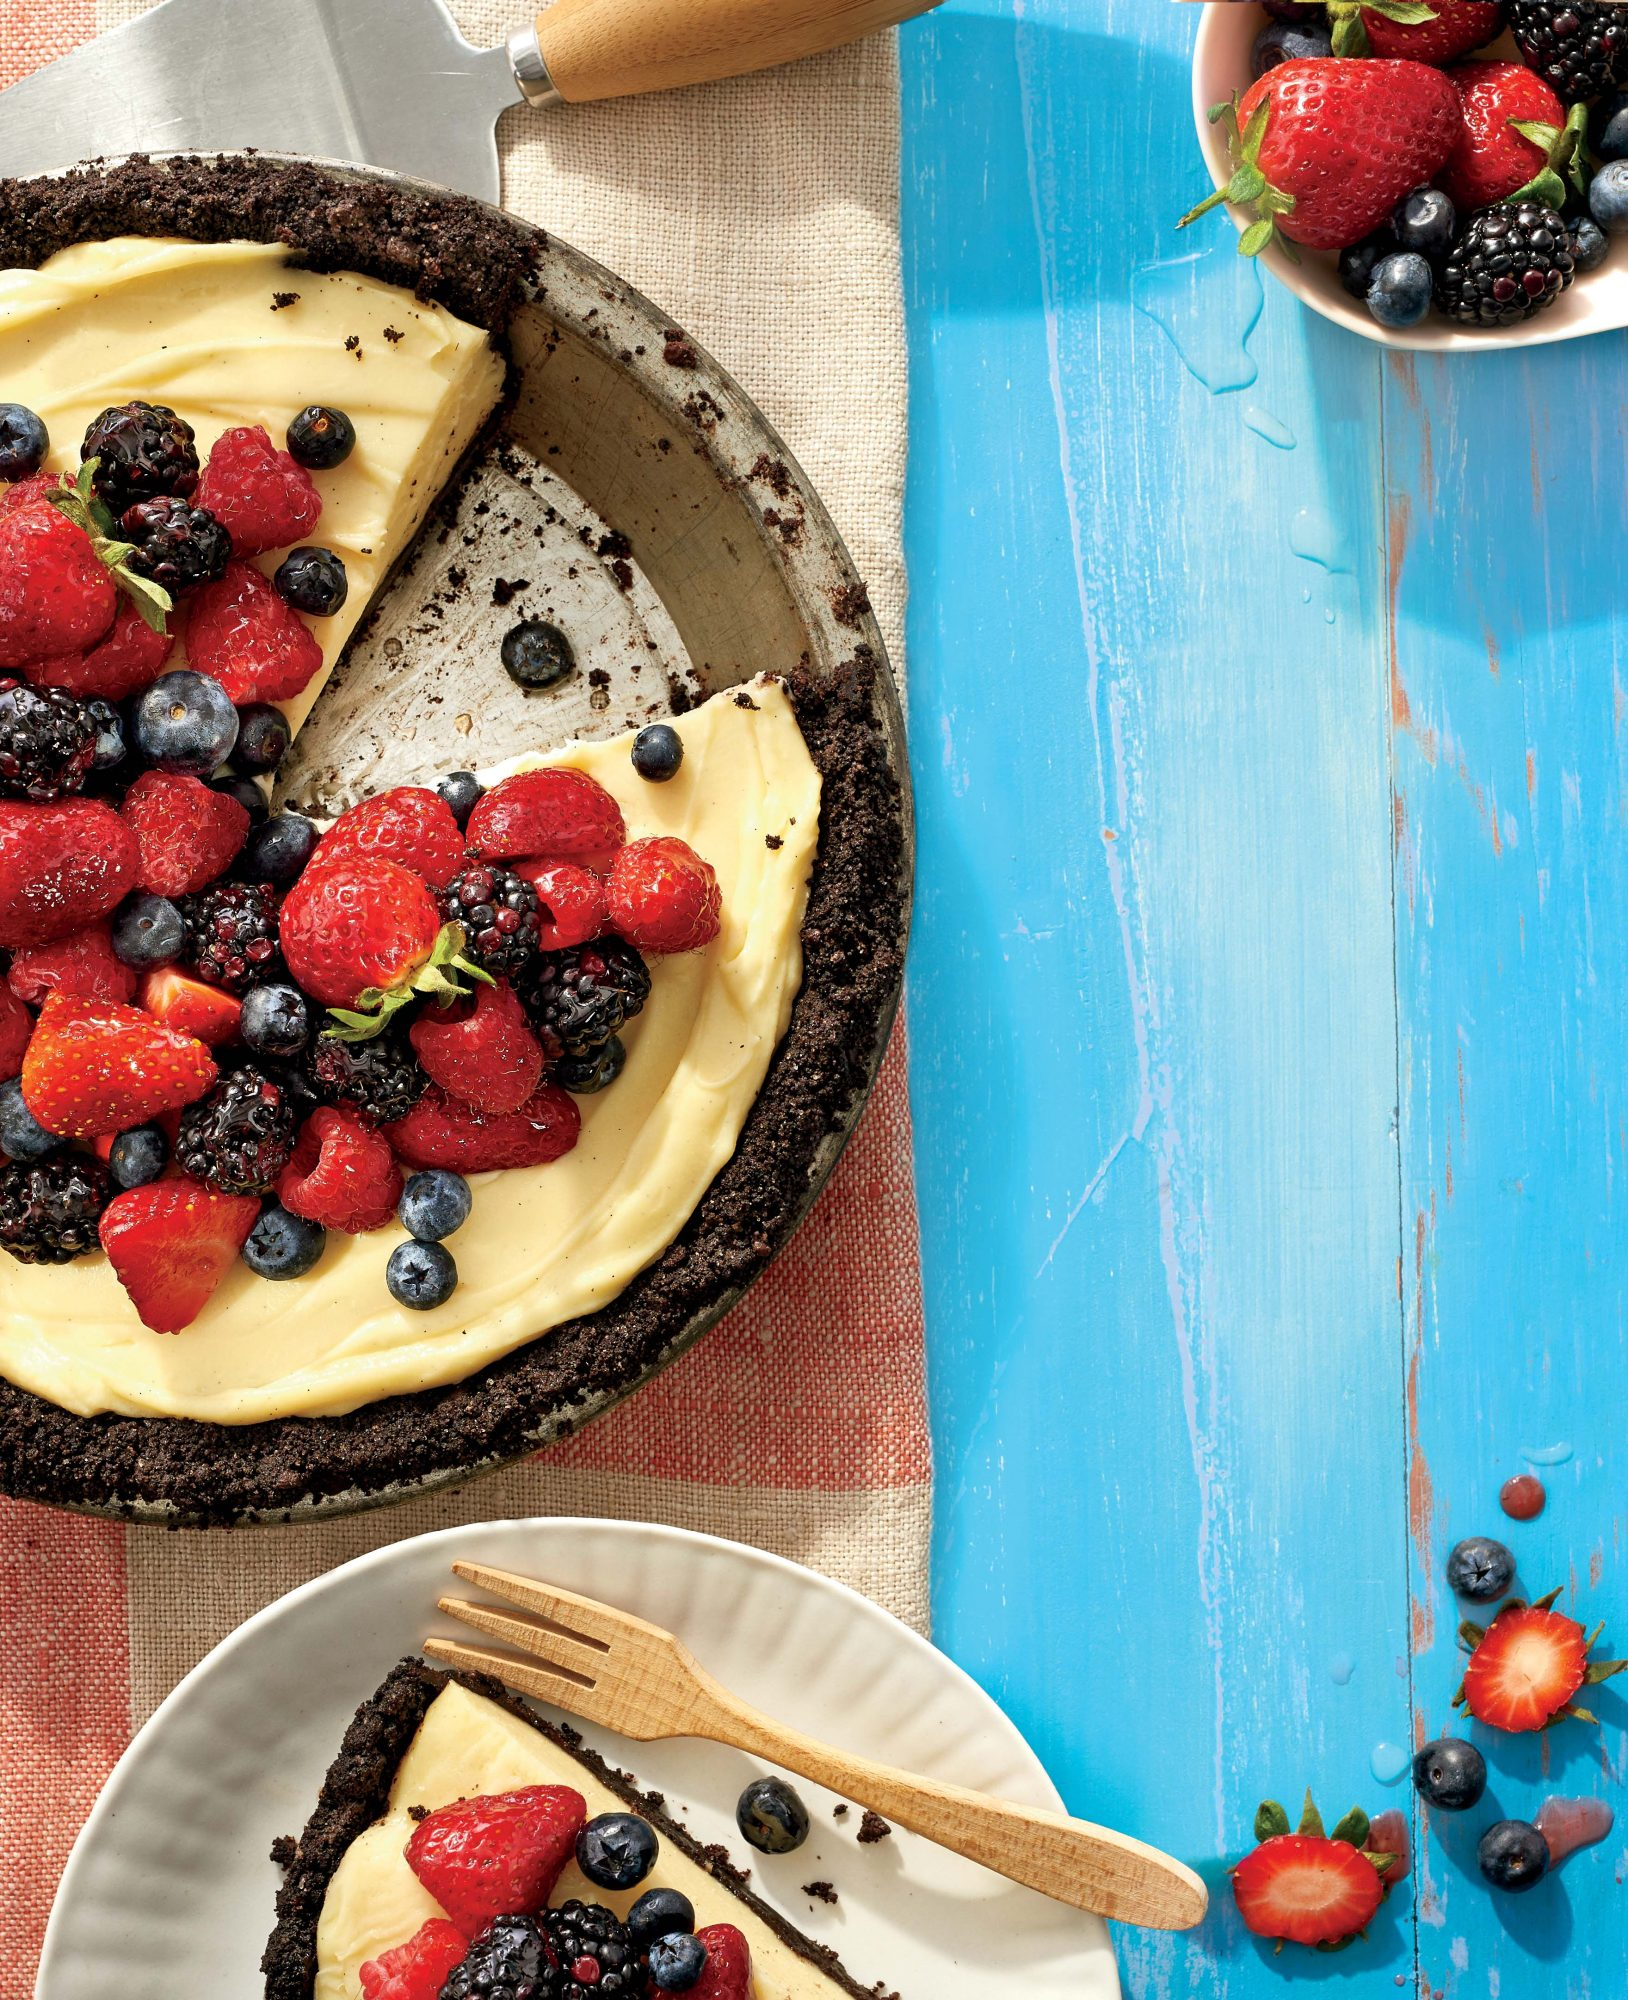 cl-Mixed Berry Cream Pie with Double Chocolate Crust Image